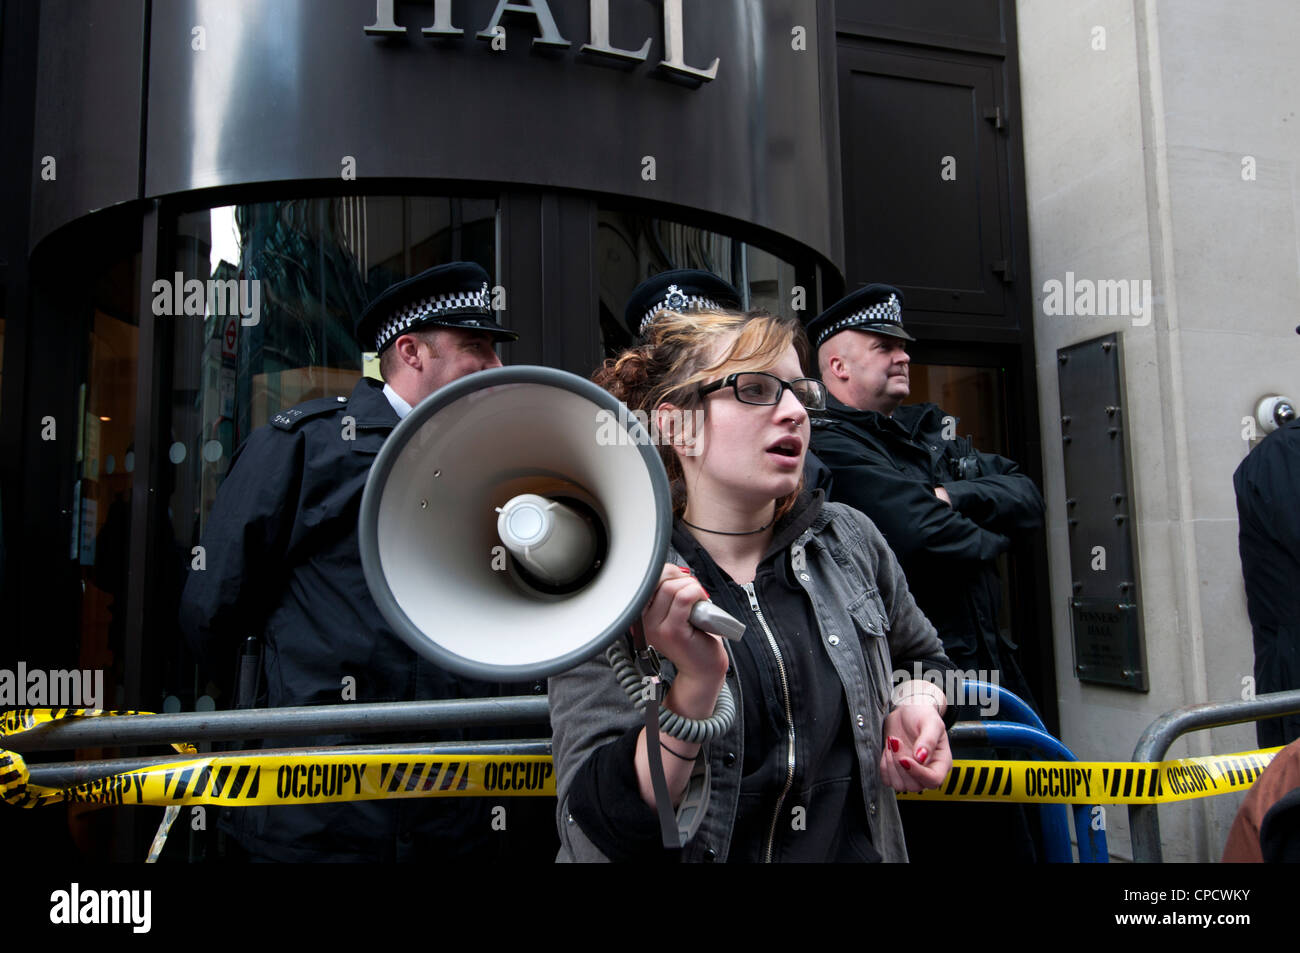 British Bankers' Association .Young woman from Occupy Movement with megaphone - Stock Image